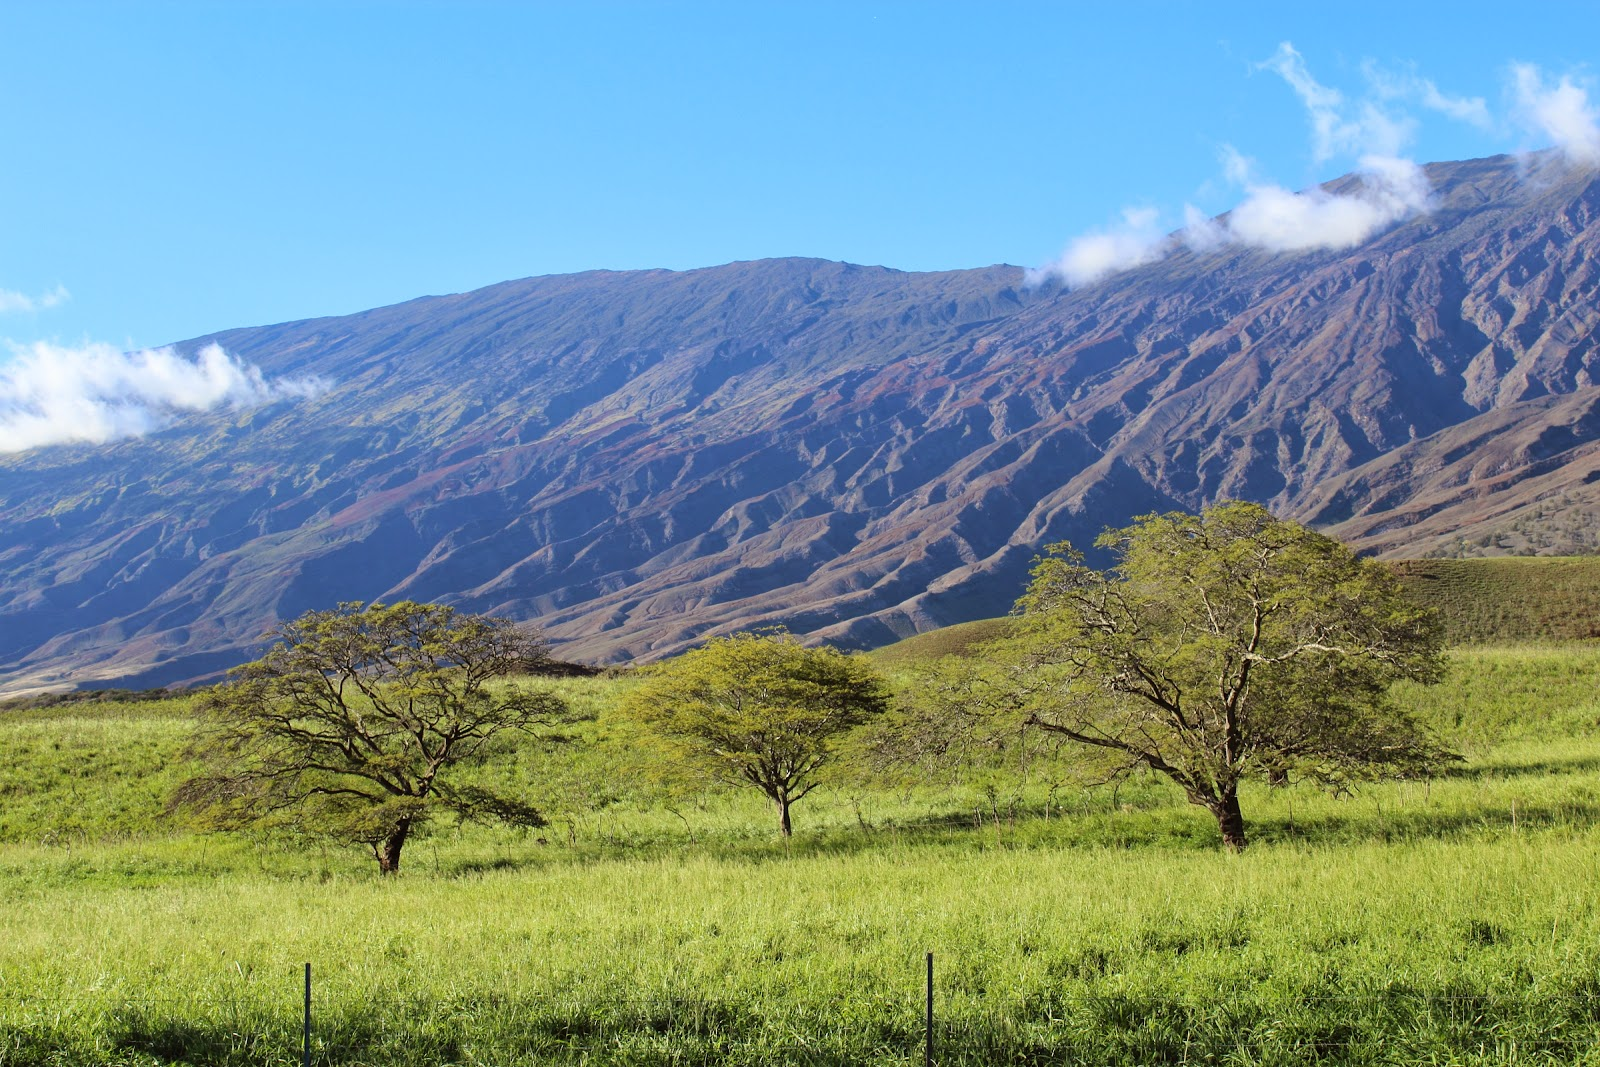 The back side of Haleakala